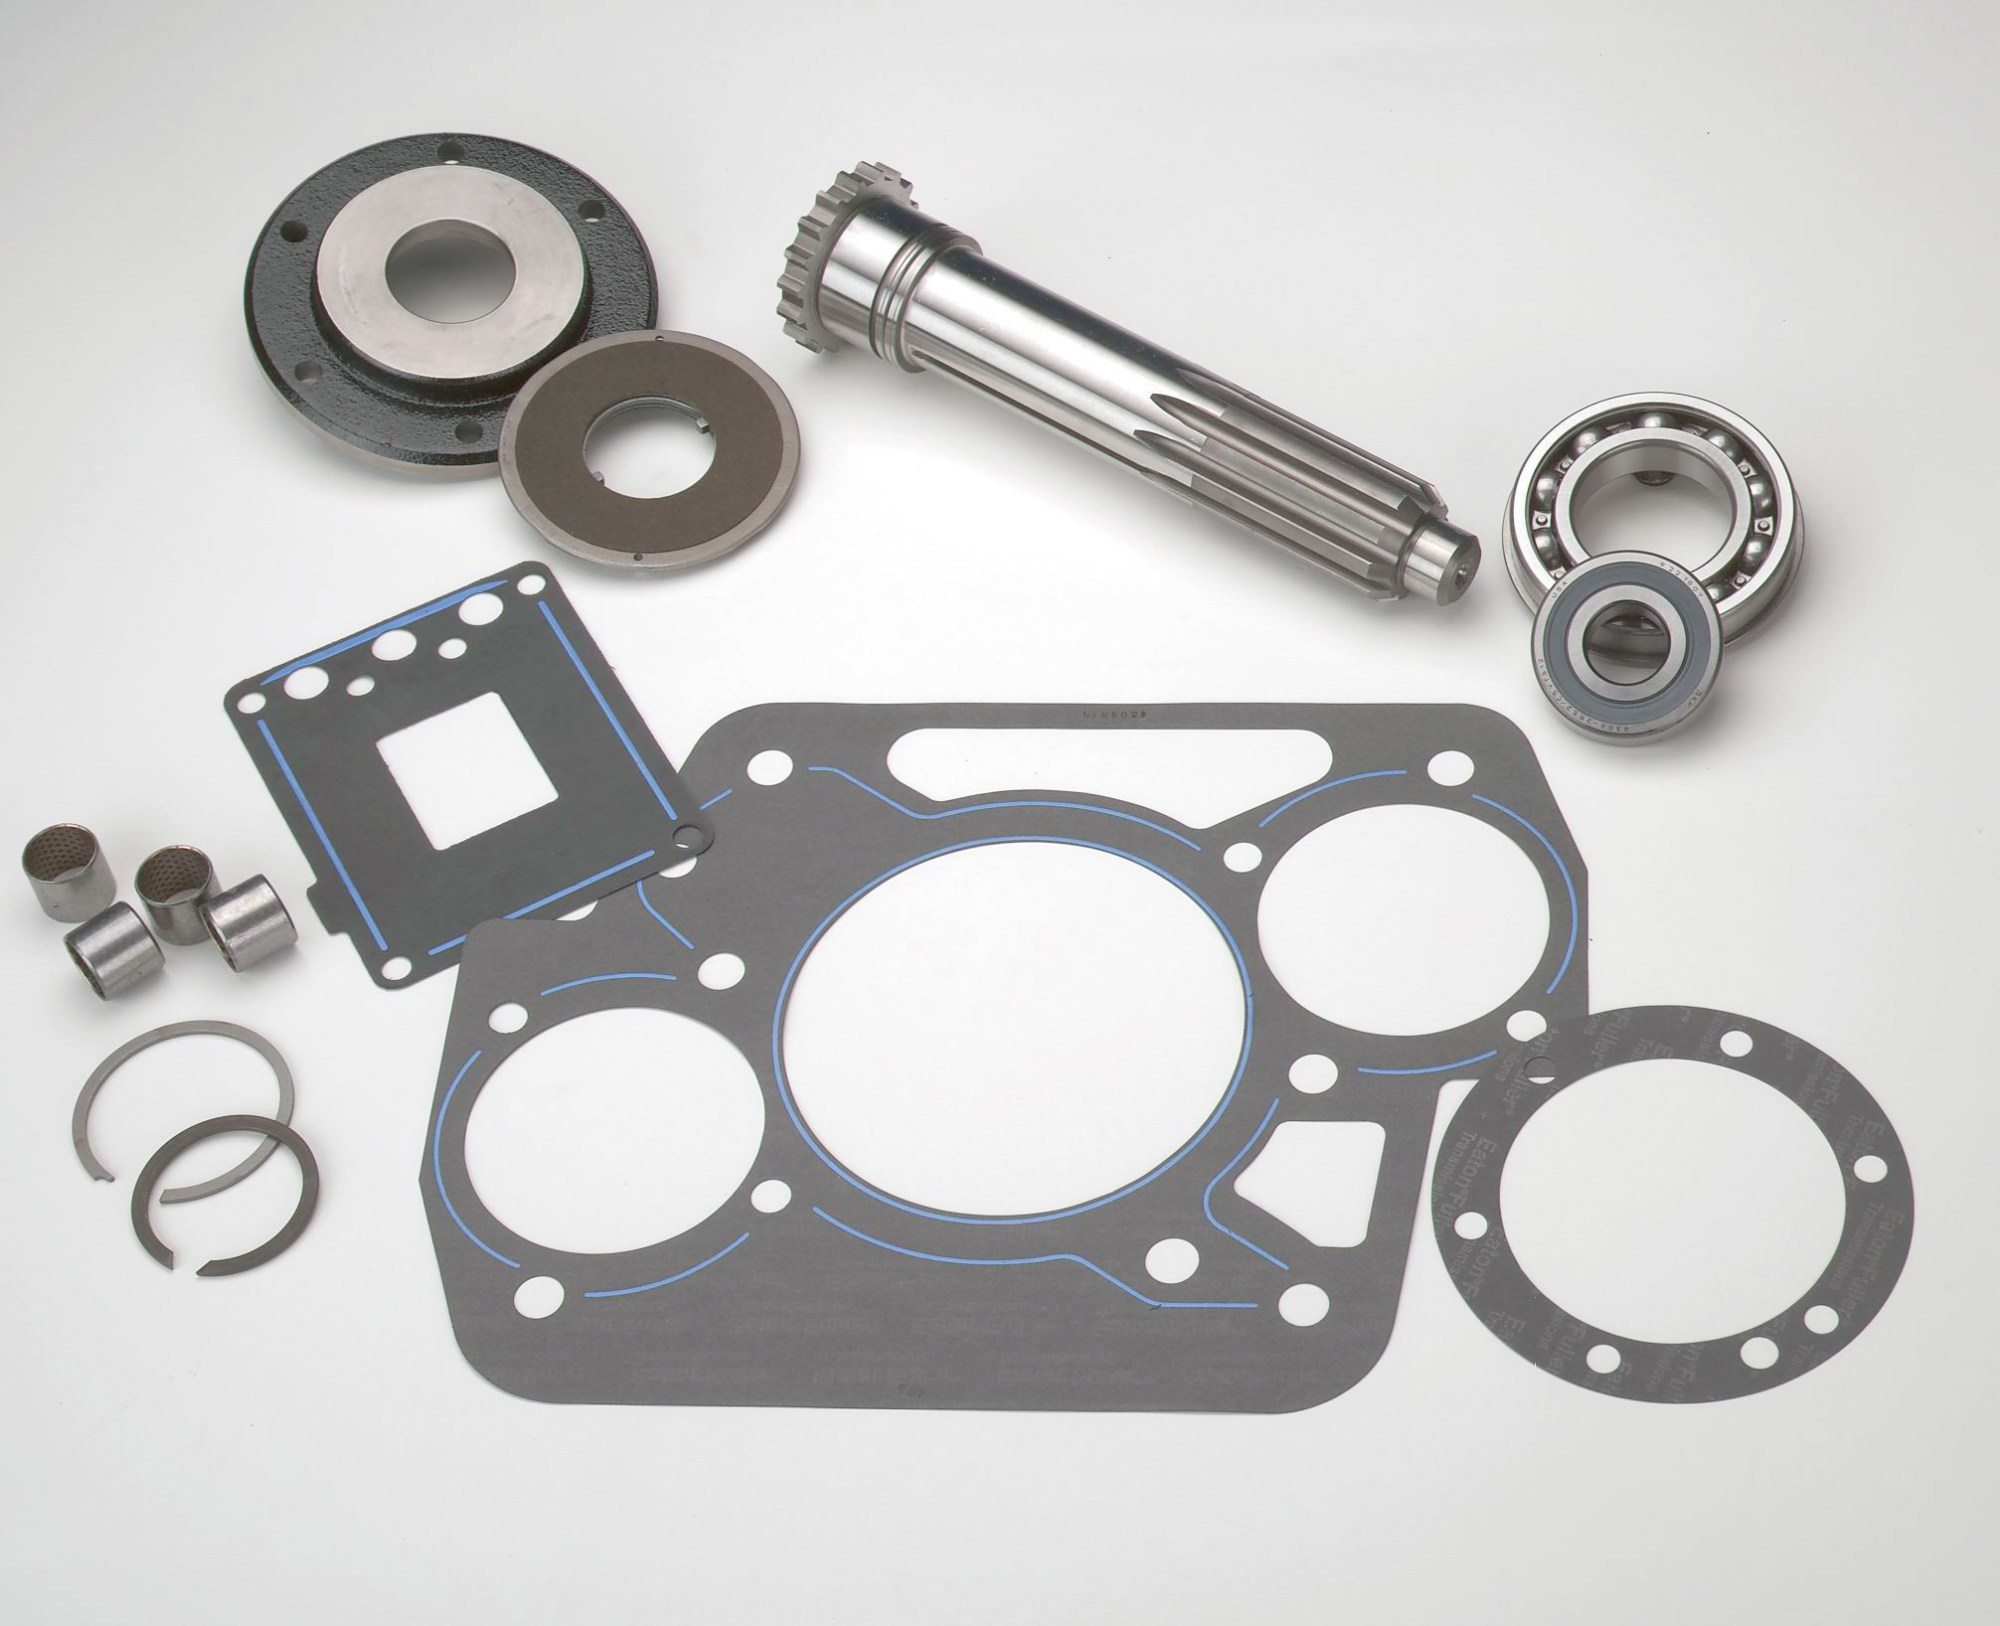 hight resolution of clutch installation kits go to convertible 9 to 13 manual transmission